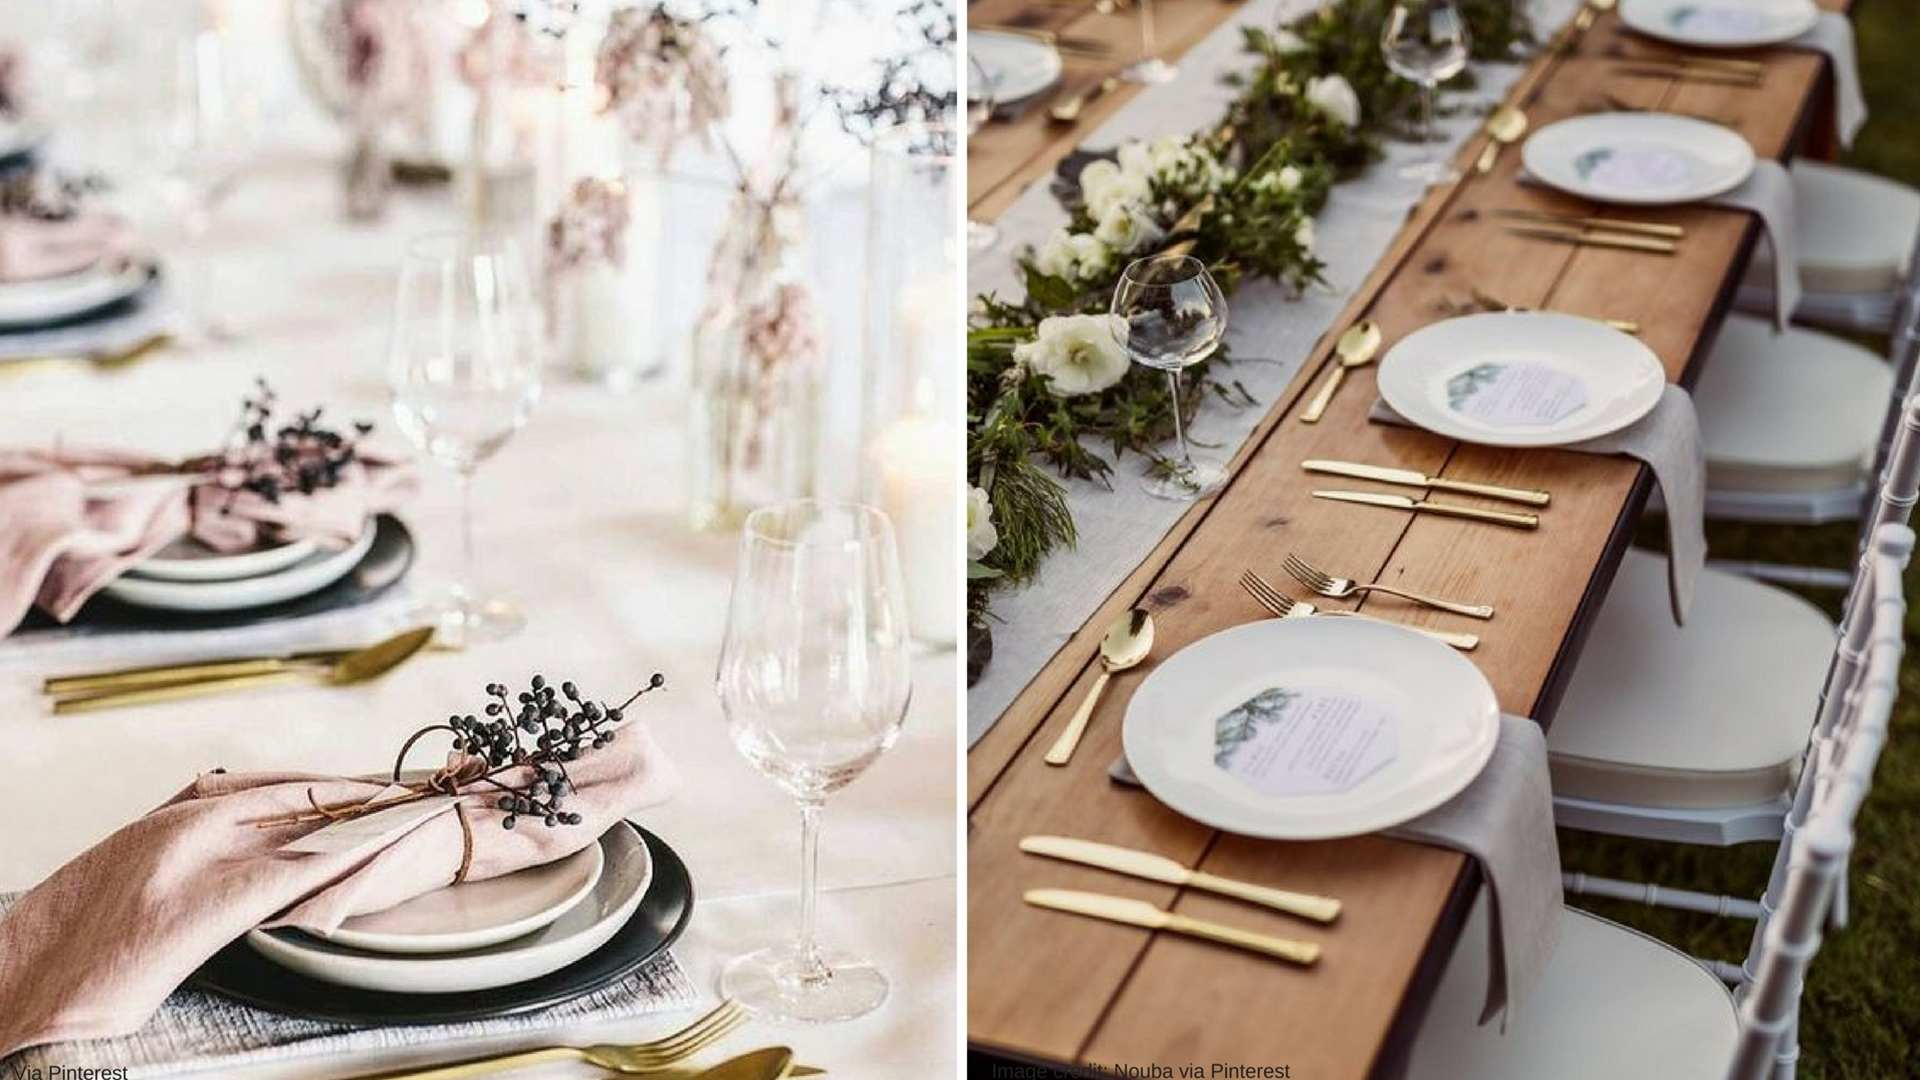 Your basic table settings don't have to look plain and boring